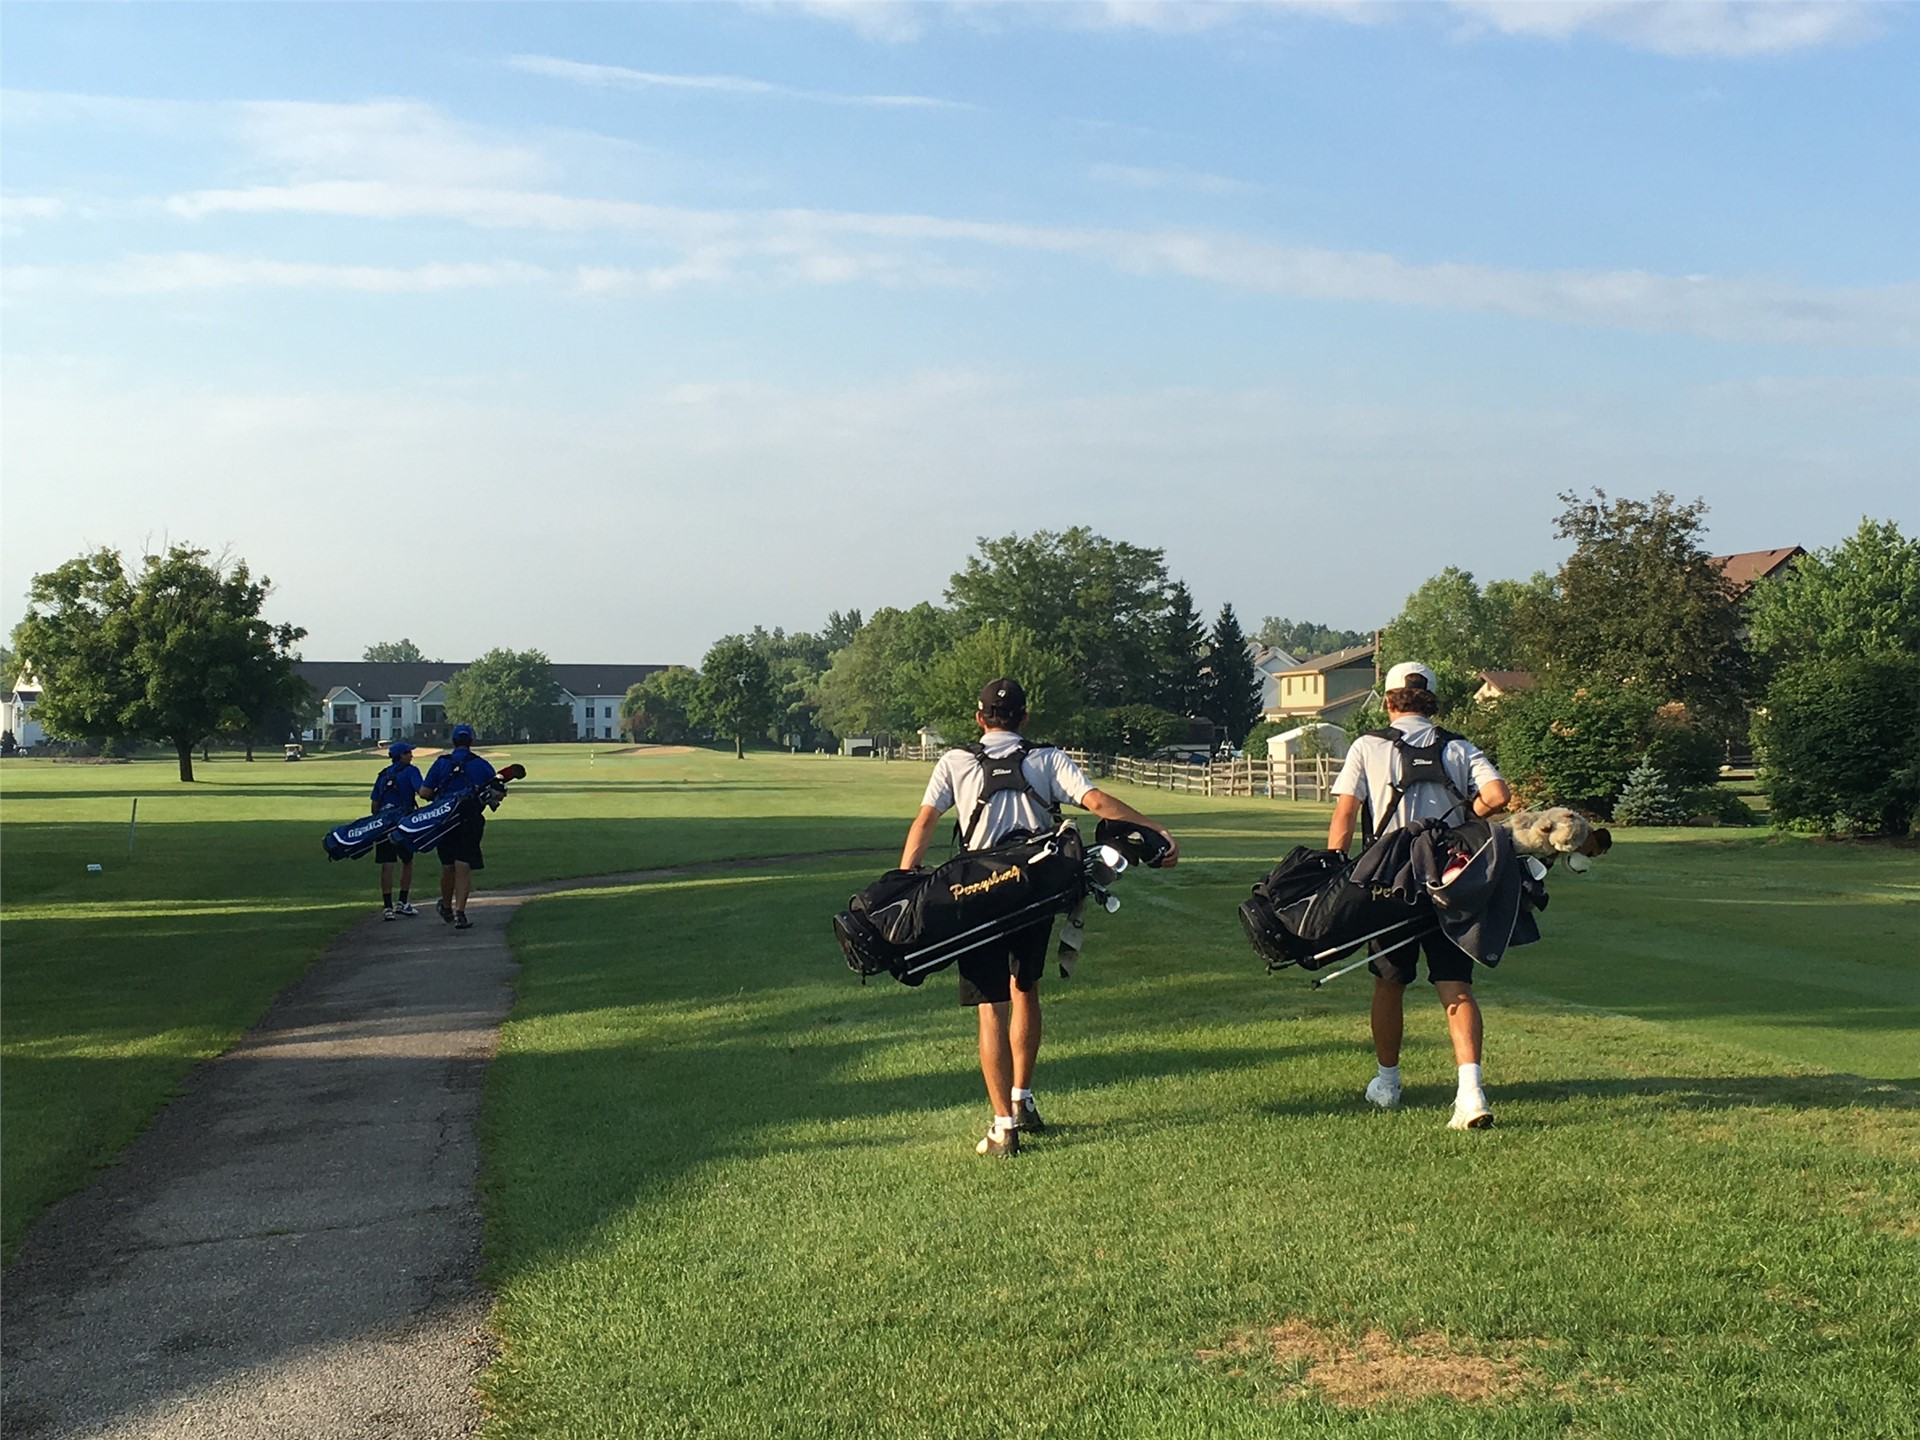 PHS student athletes walking down the fairway